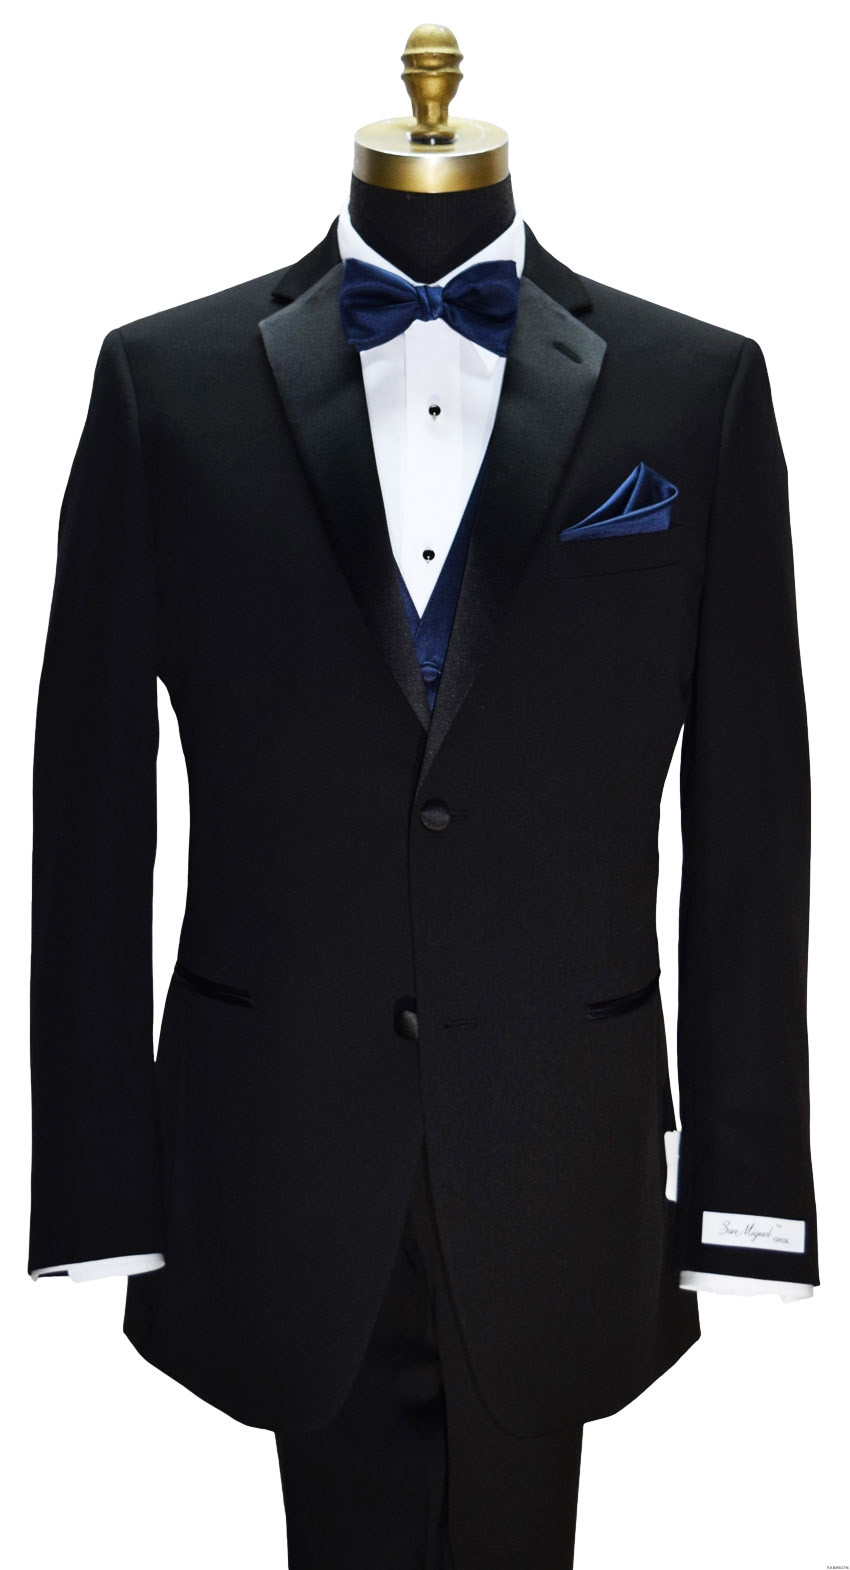 2 button black notch lapel tuxedo with navy blue vest and bowtie on tuxbling.com